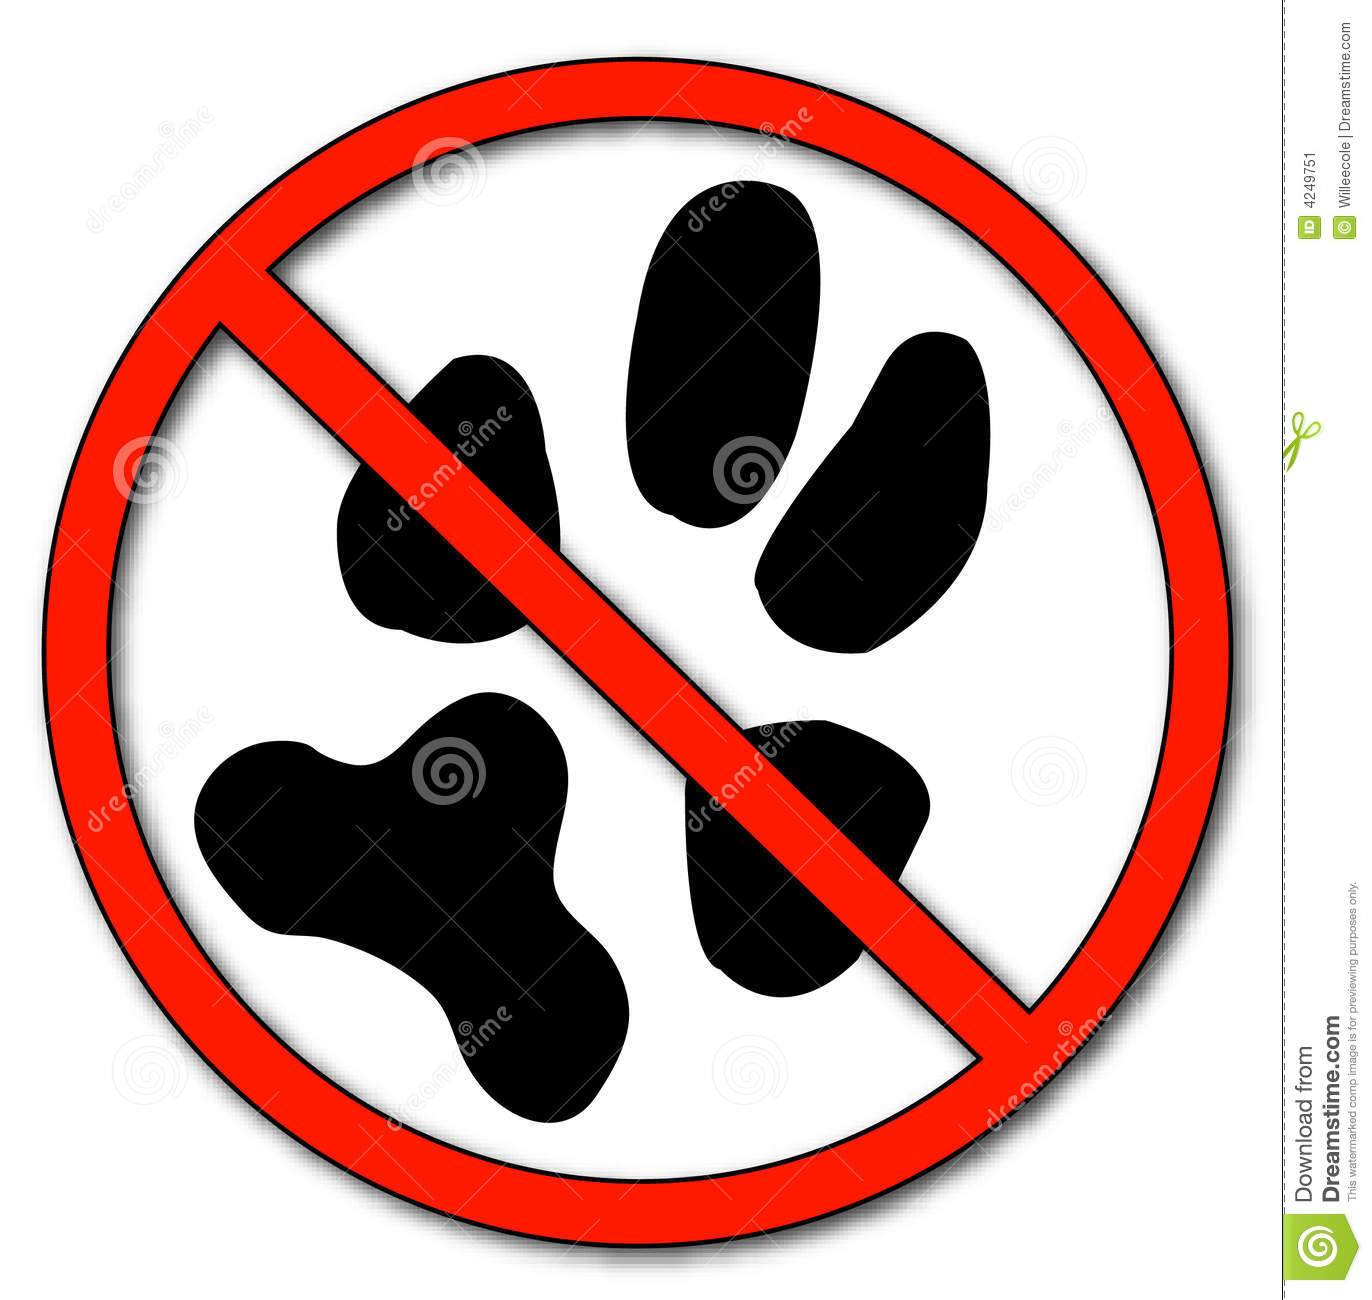 With not allowed symbol no pets allowed vector mr no pr no 3 2273 7